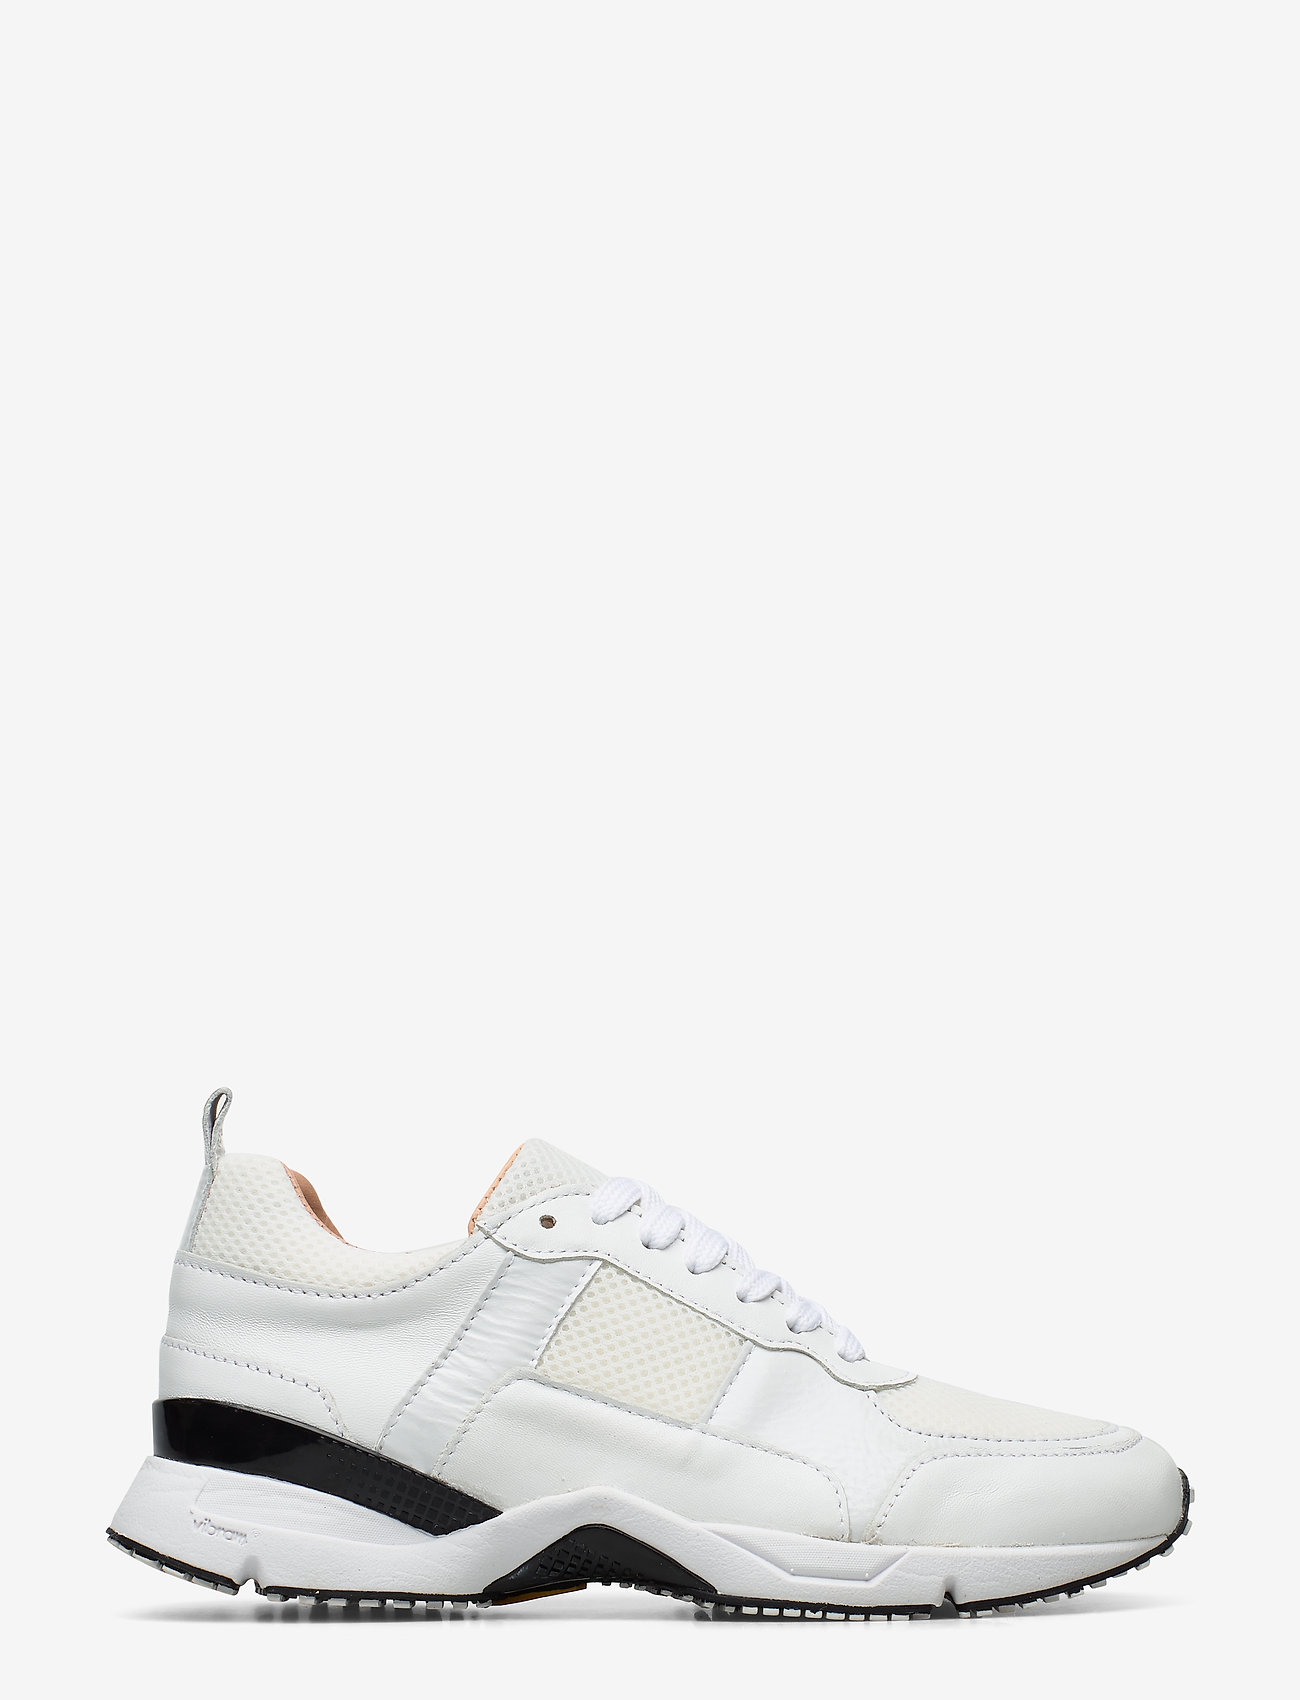 Billi Bi - SHOES - sneakers med lav ankel - white comb. 521 - 1